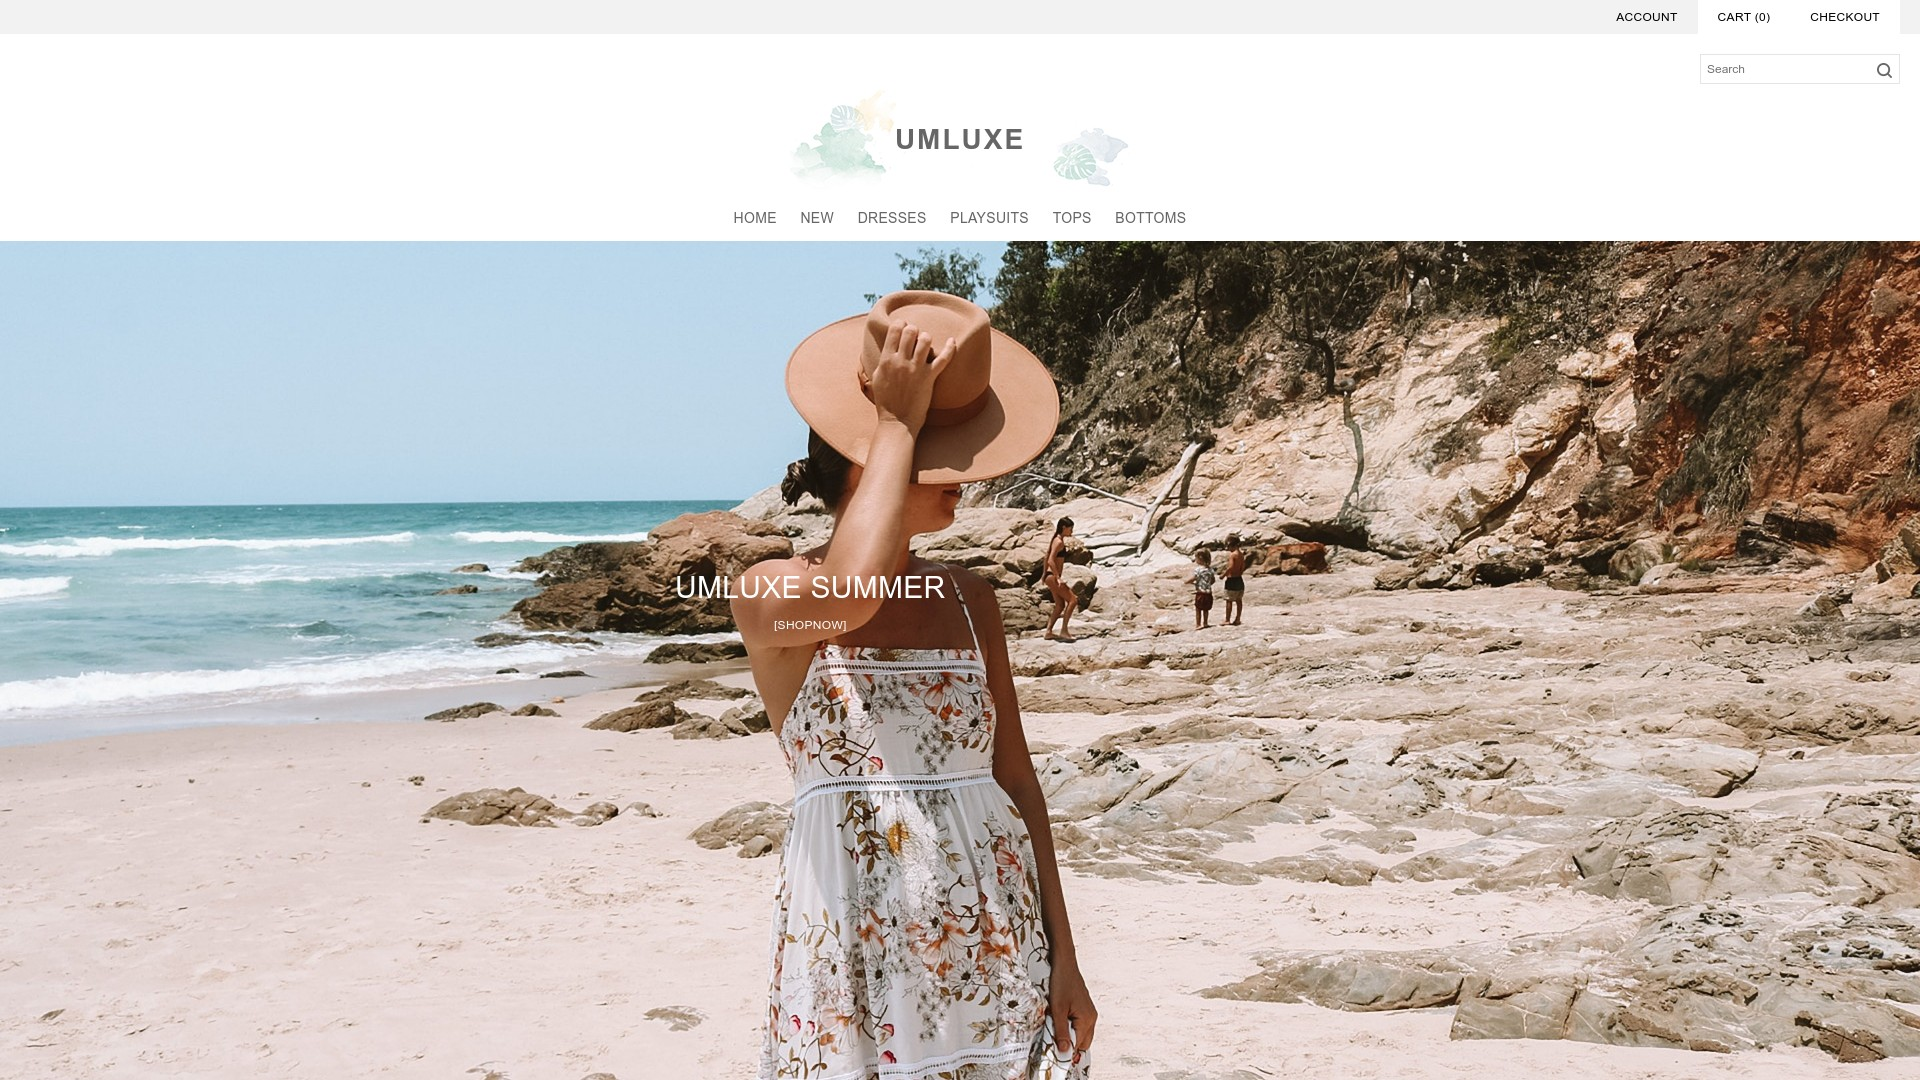 Umluxe.com Reviews  is the Online Store a Scam or is it Legit?